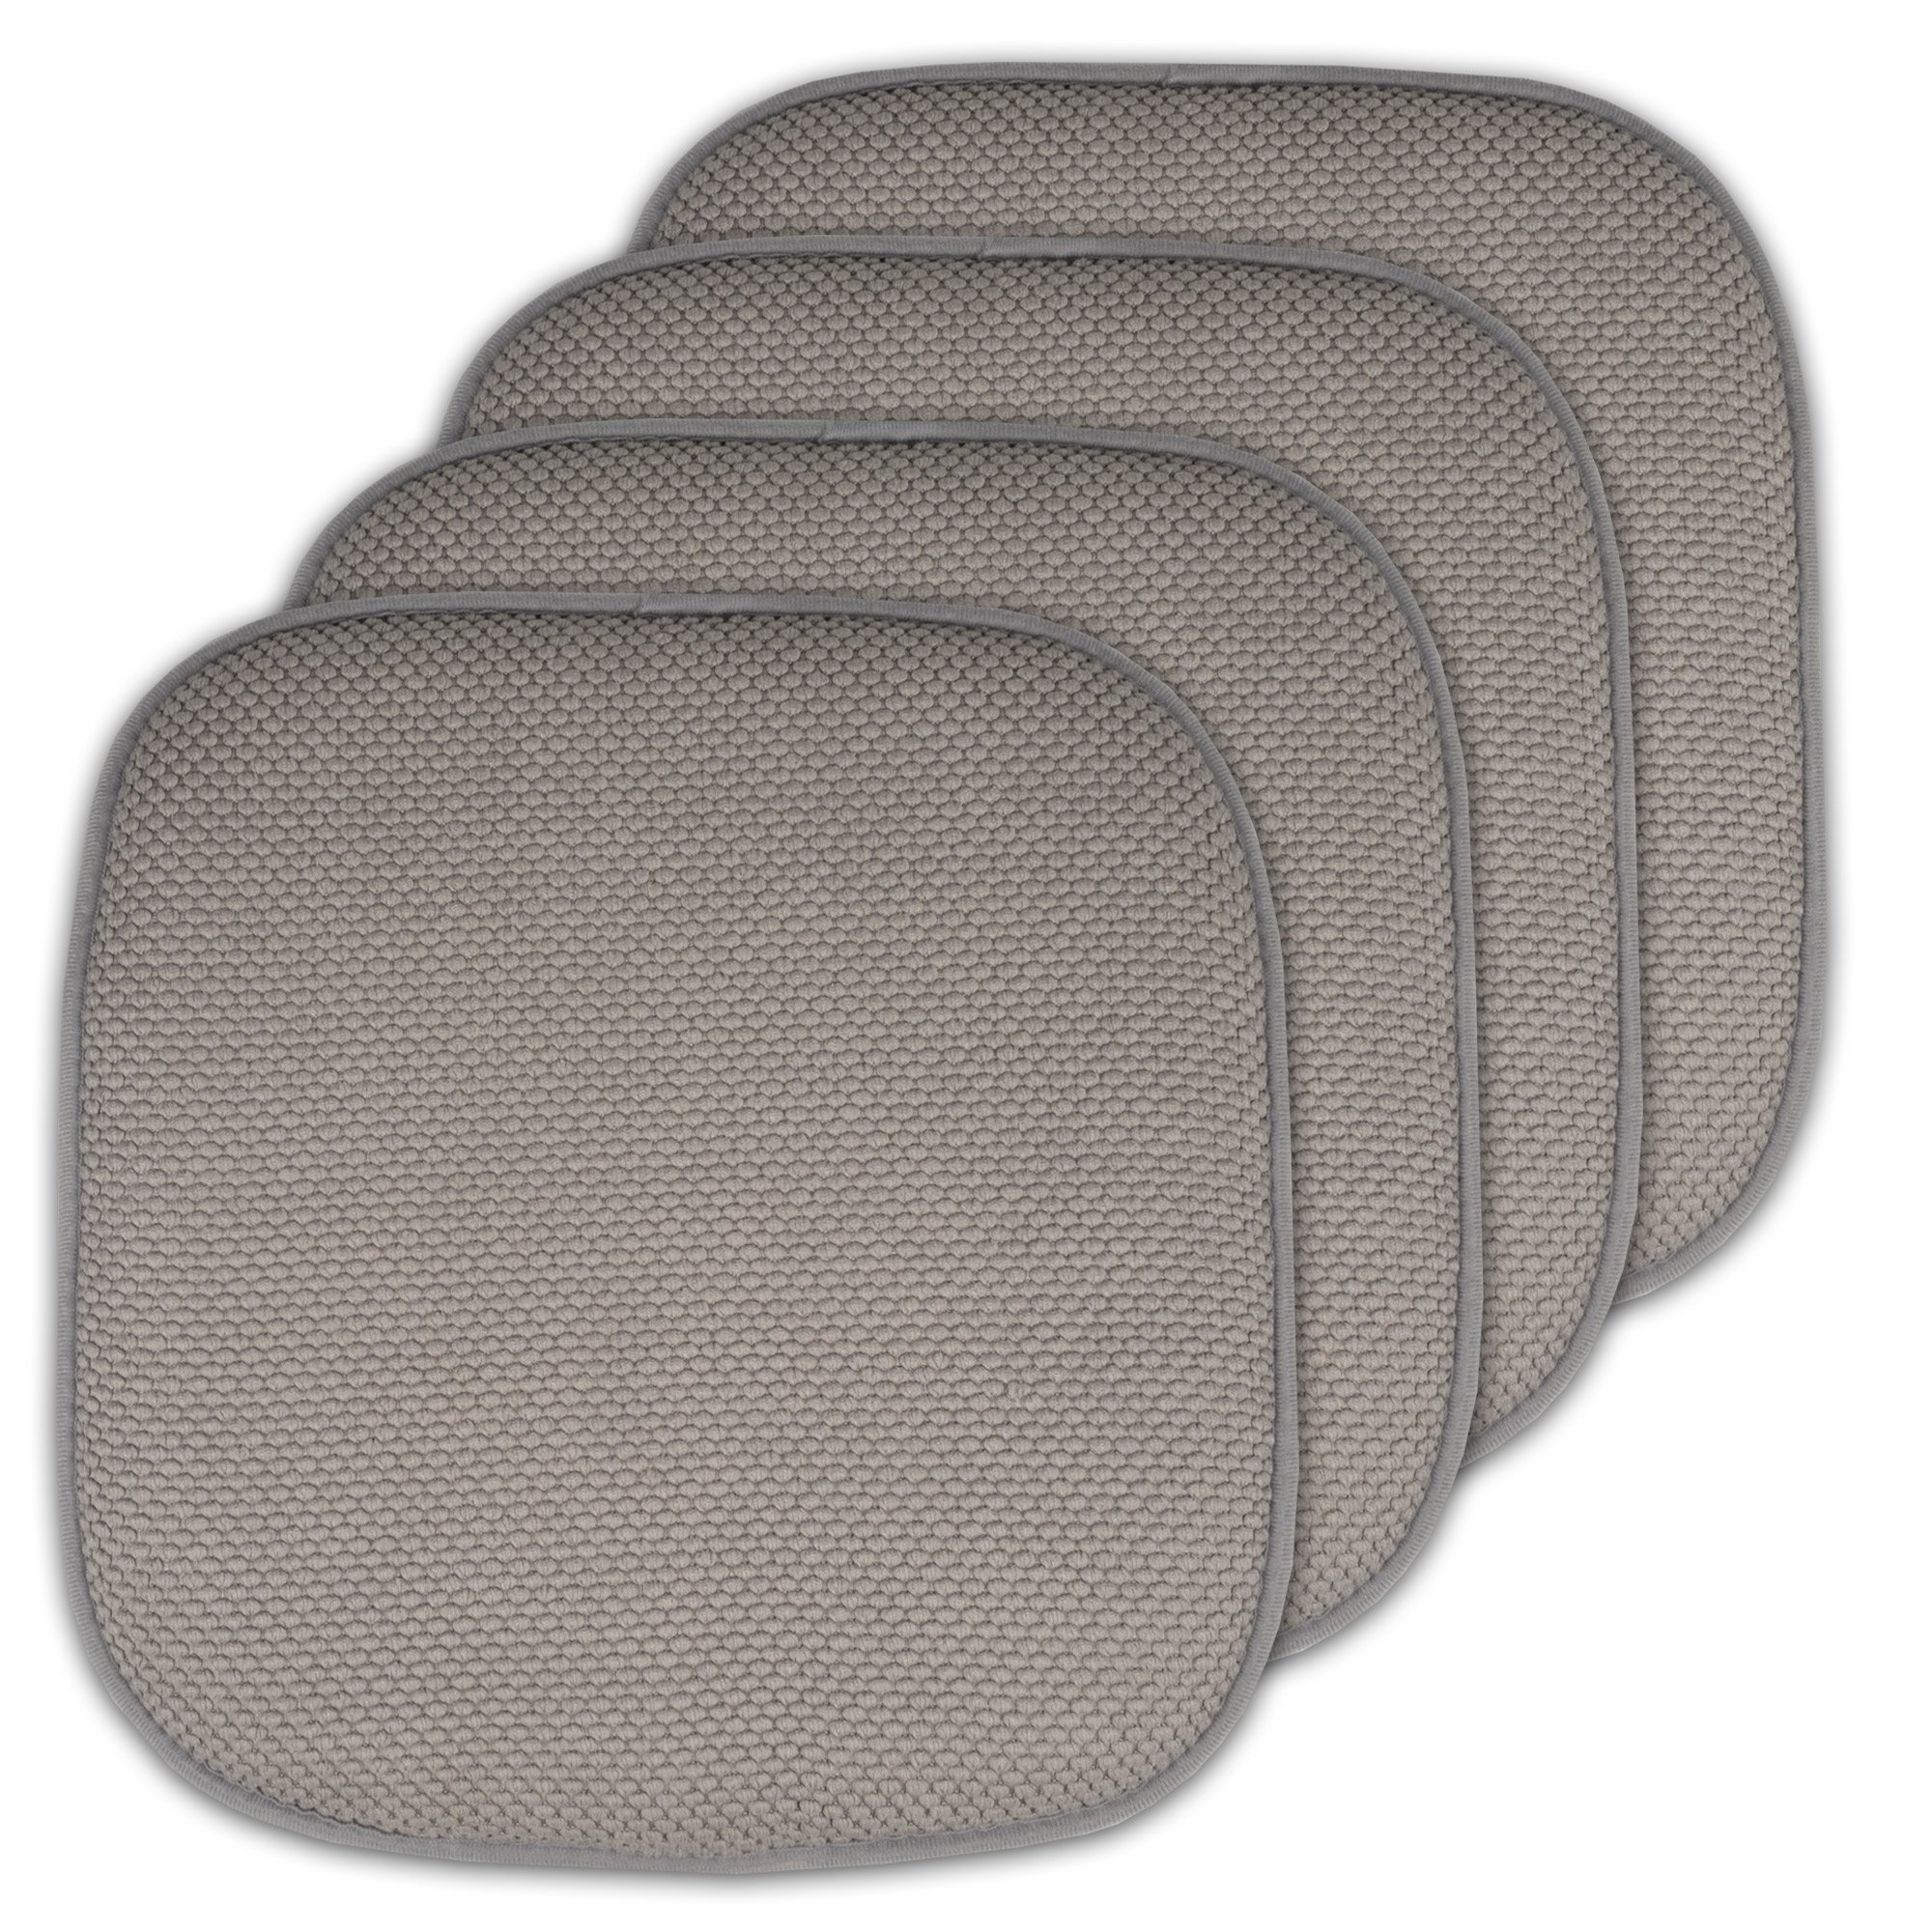 Sweet Home Collection Memory Foam Honeycomb Non-Slip Back Chair/Seat Cushion Pad (4 Pack), 16'' x 16'', Silver